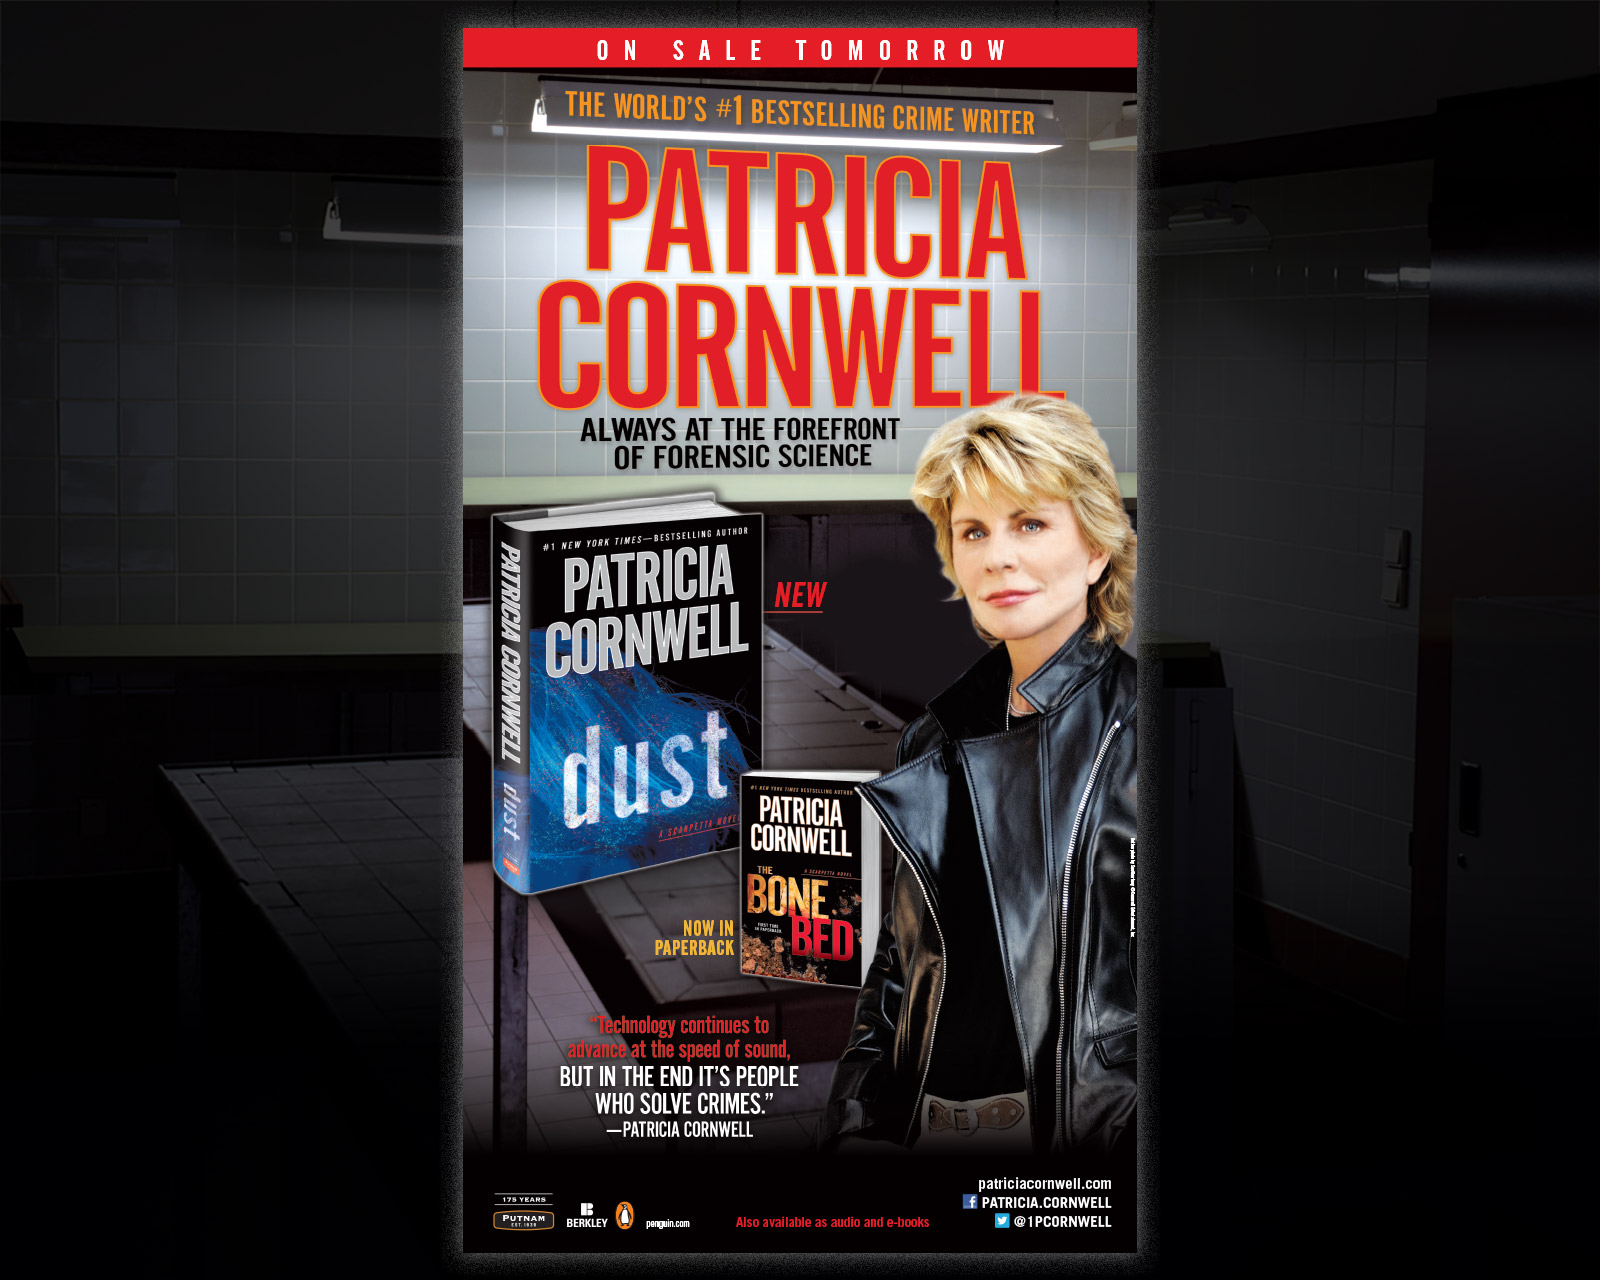 Patricia Cornwell - Dust - New York Times Full Page Ad